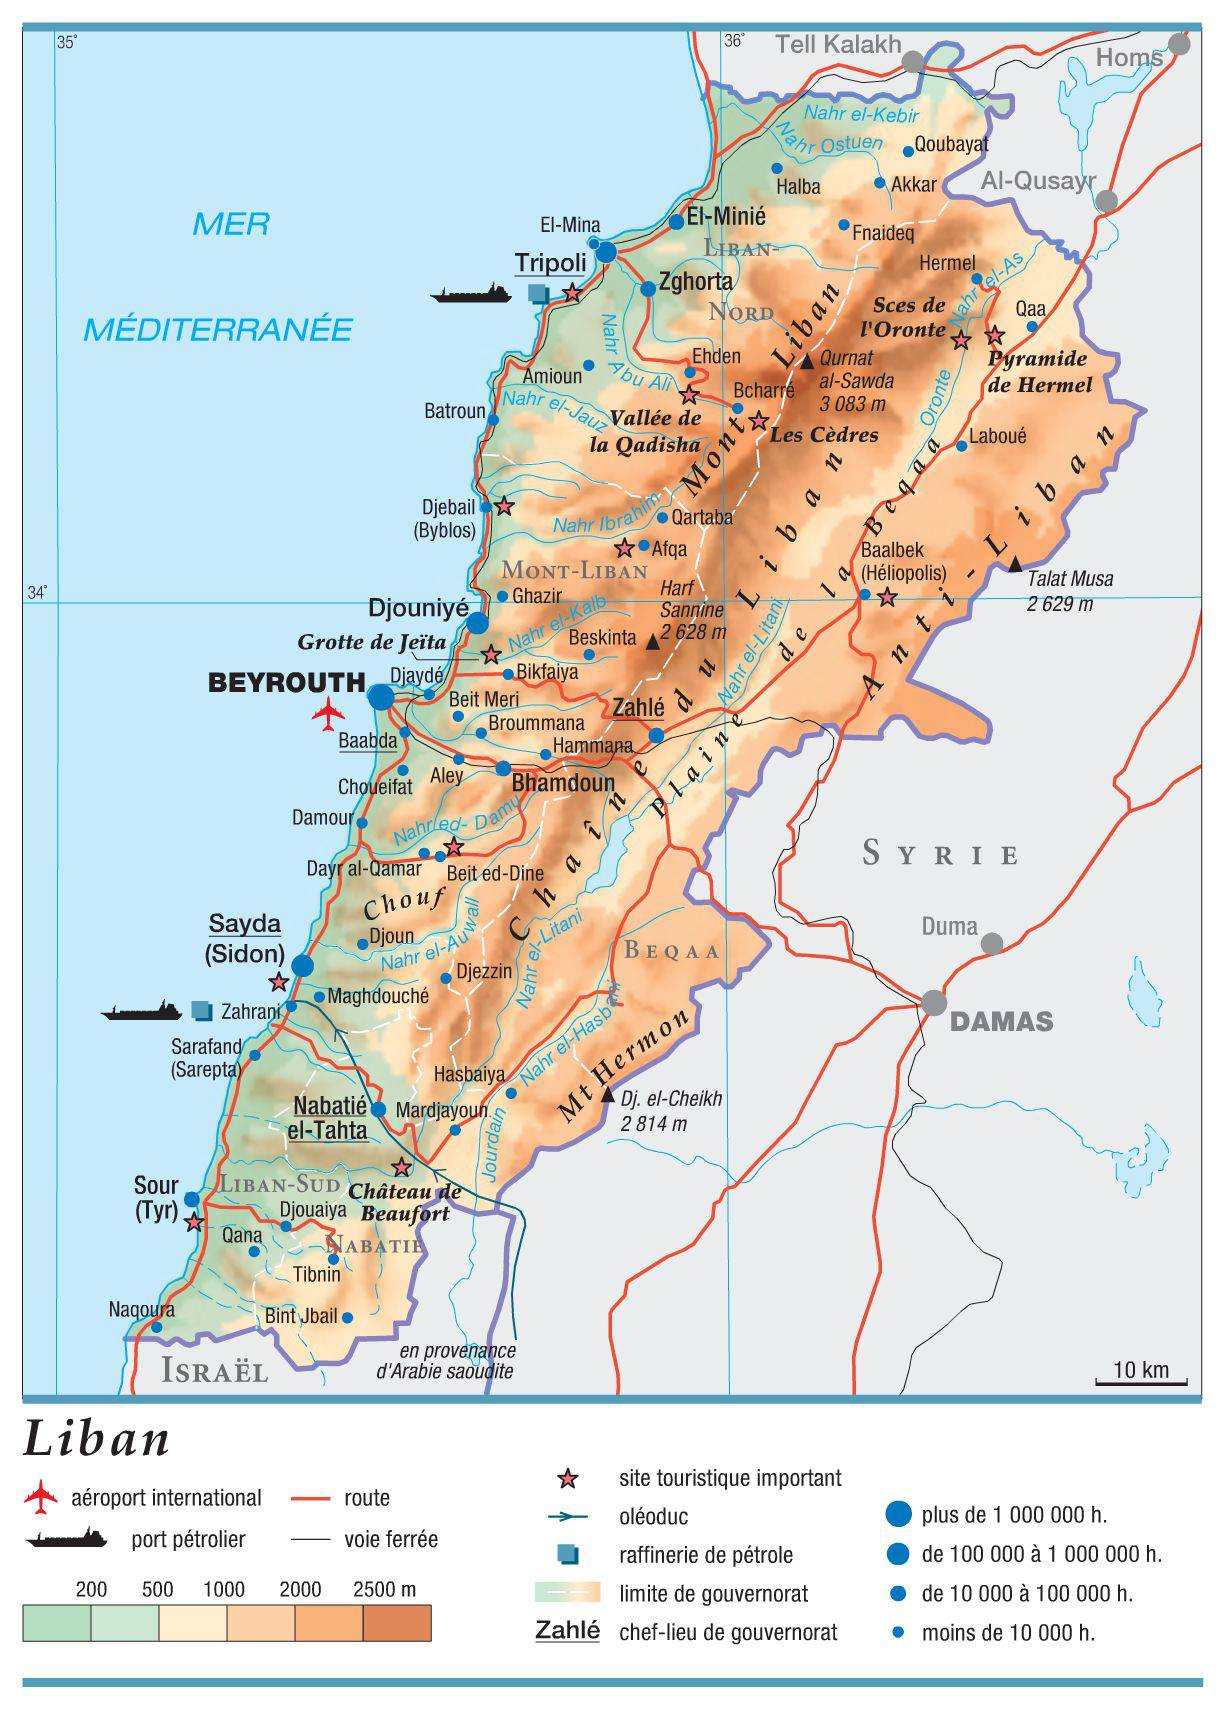 Carte du Liban